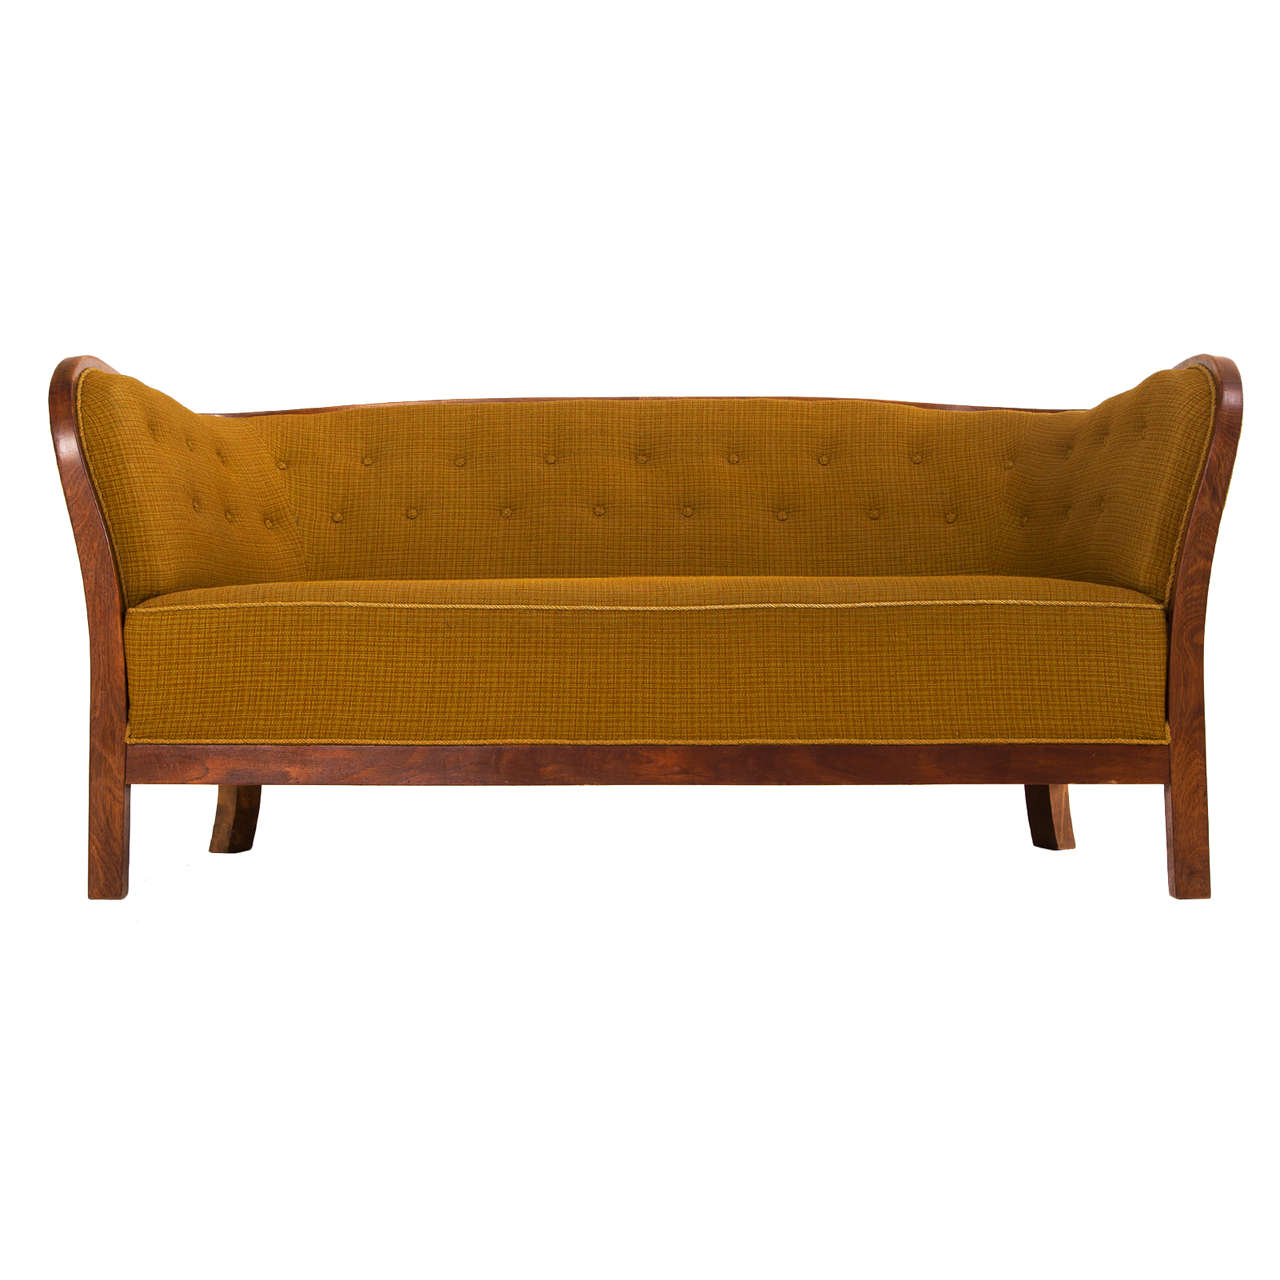 1940s danish art deco sofa for sale at 1stdibs. Black Bedroom Furniture Sets. Home Design Ideas